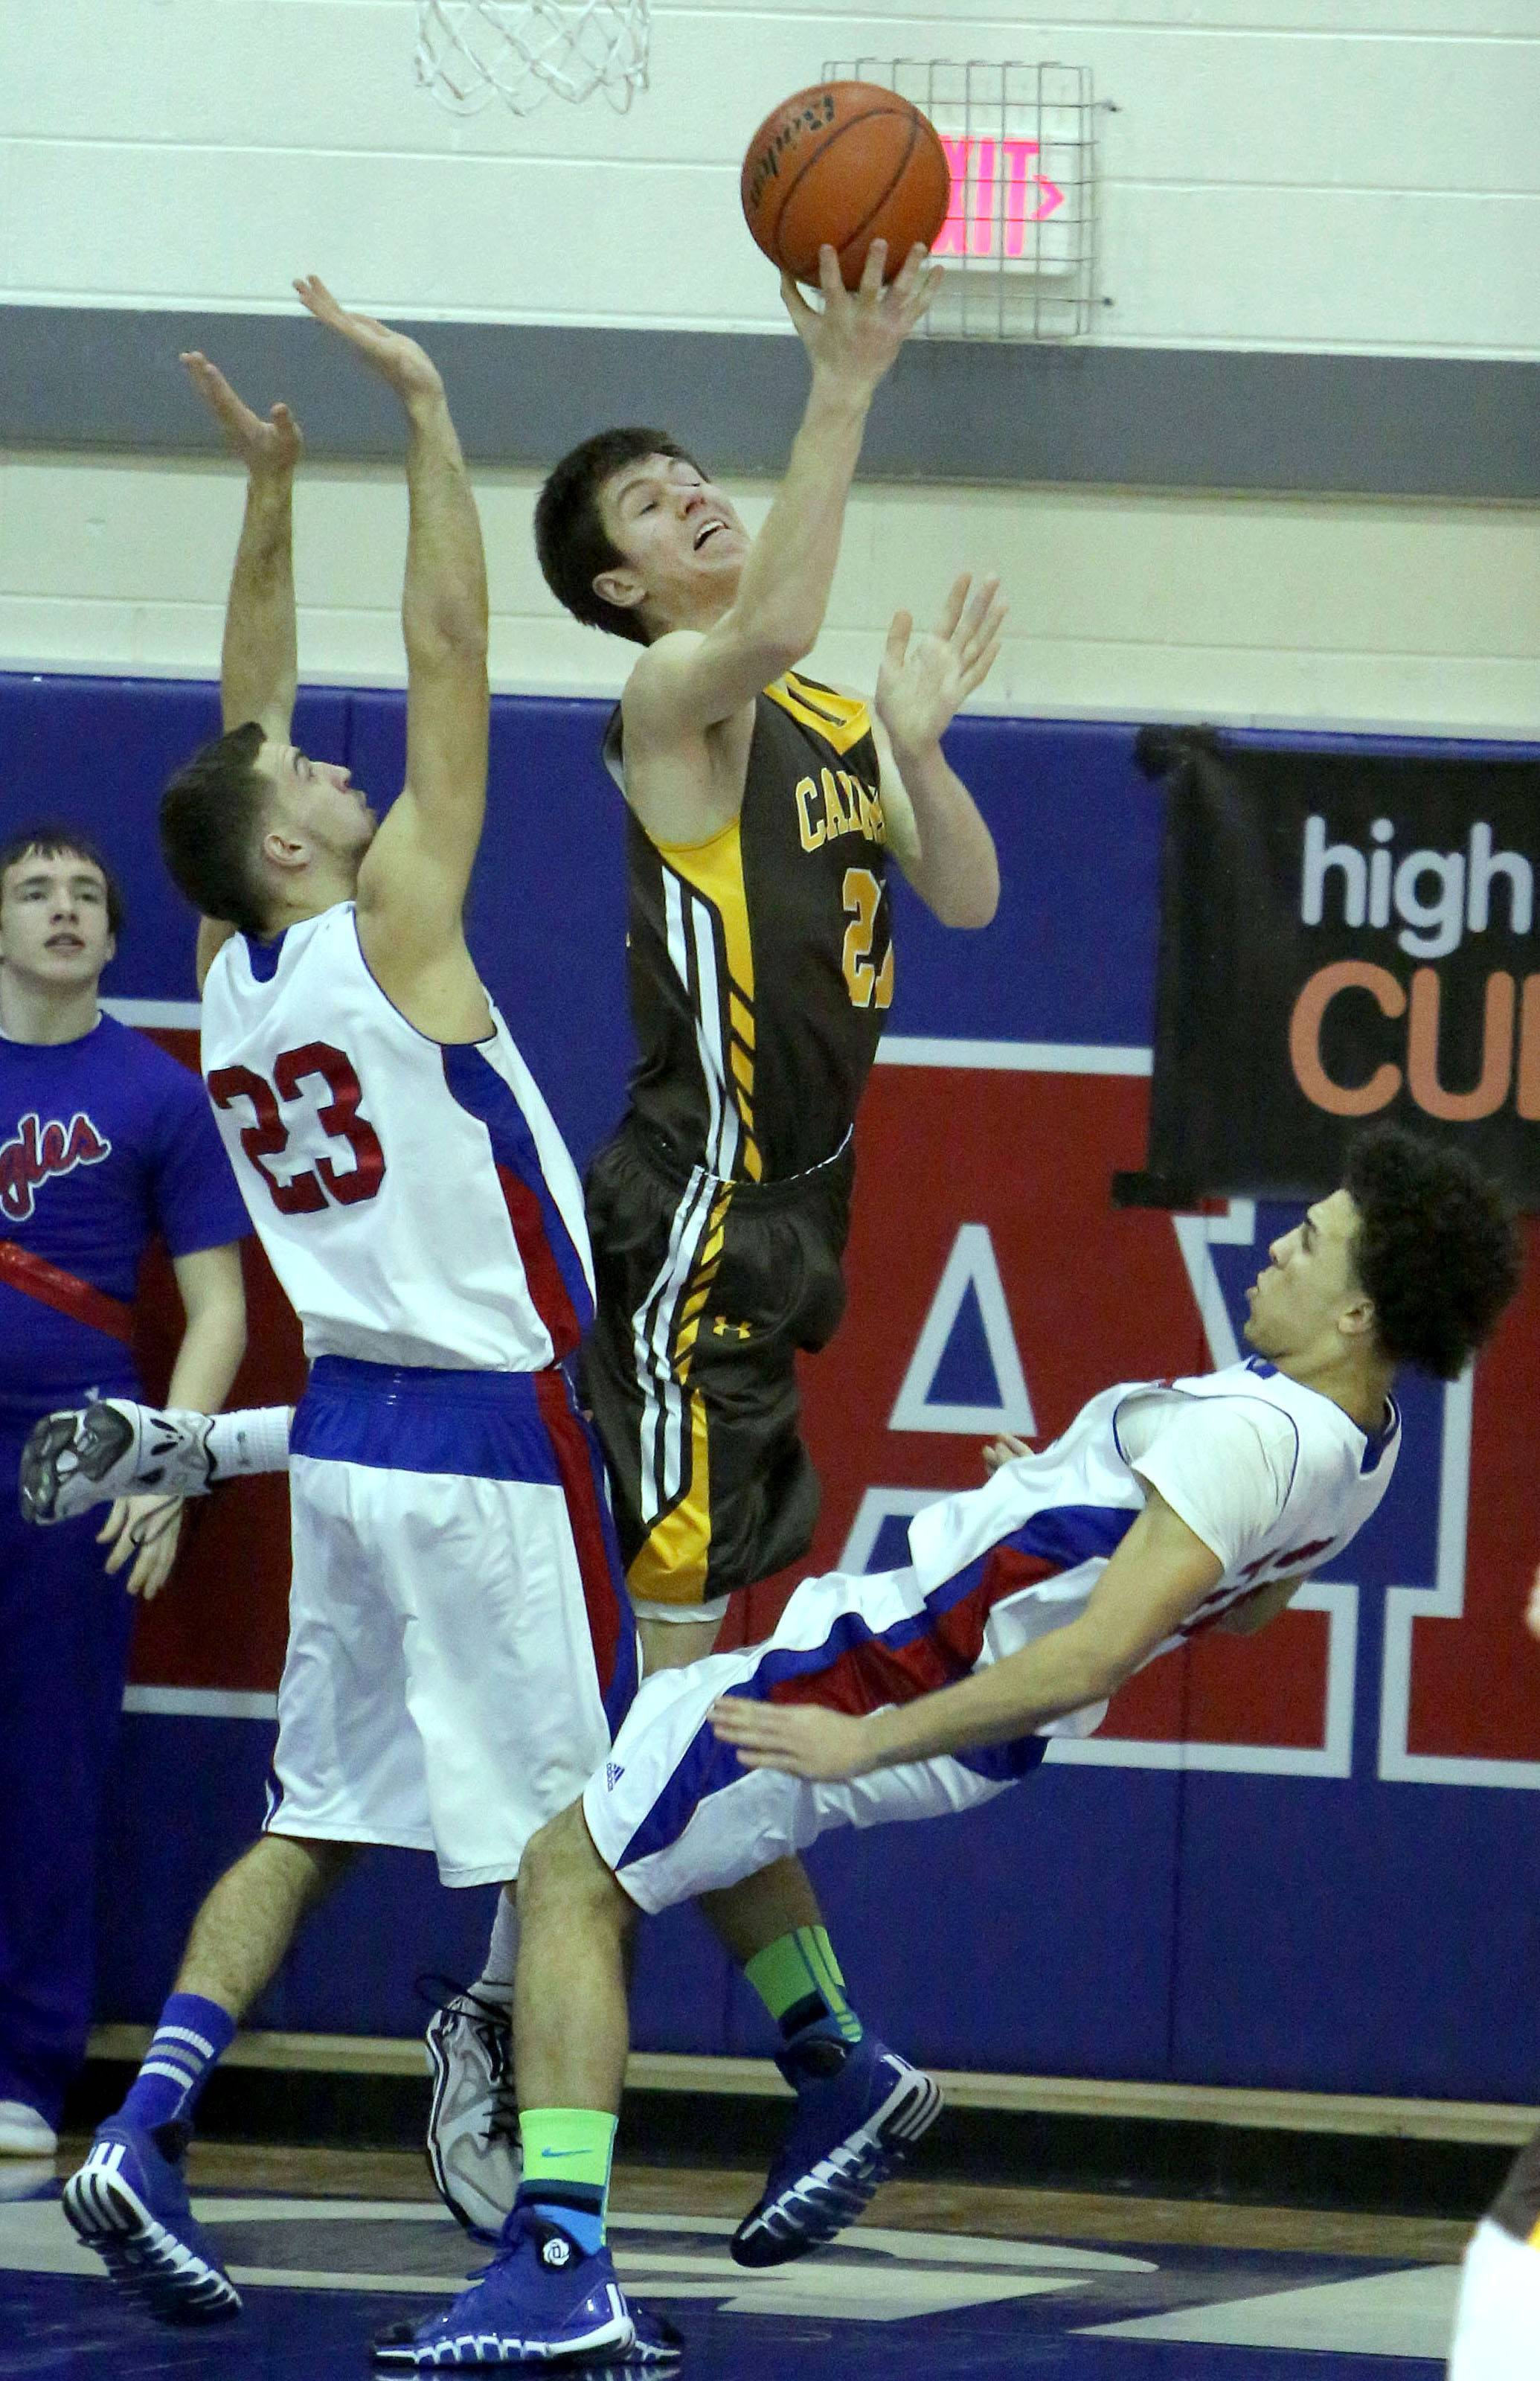 Carmel's Jack George, middle, drives on Lakes' Mike Tomasiewicz, left, and Tramone Hudson on Monday night at Lakes.